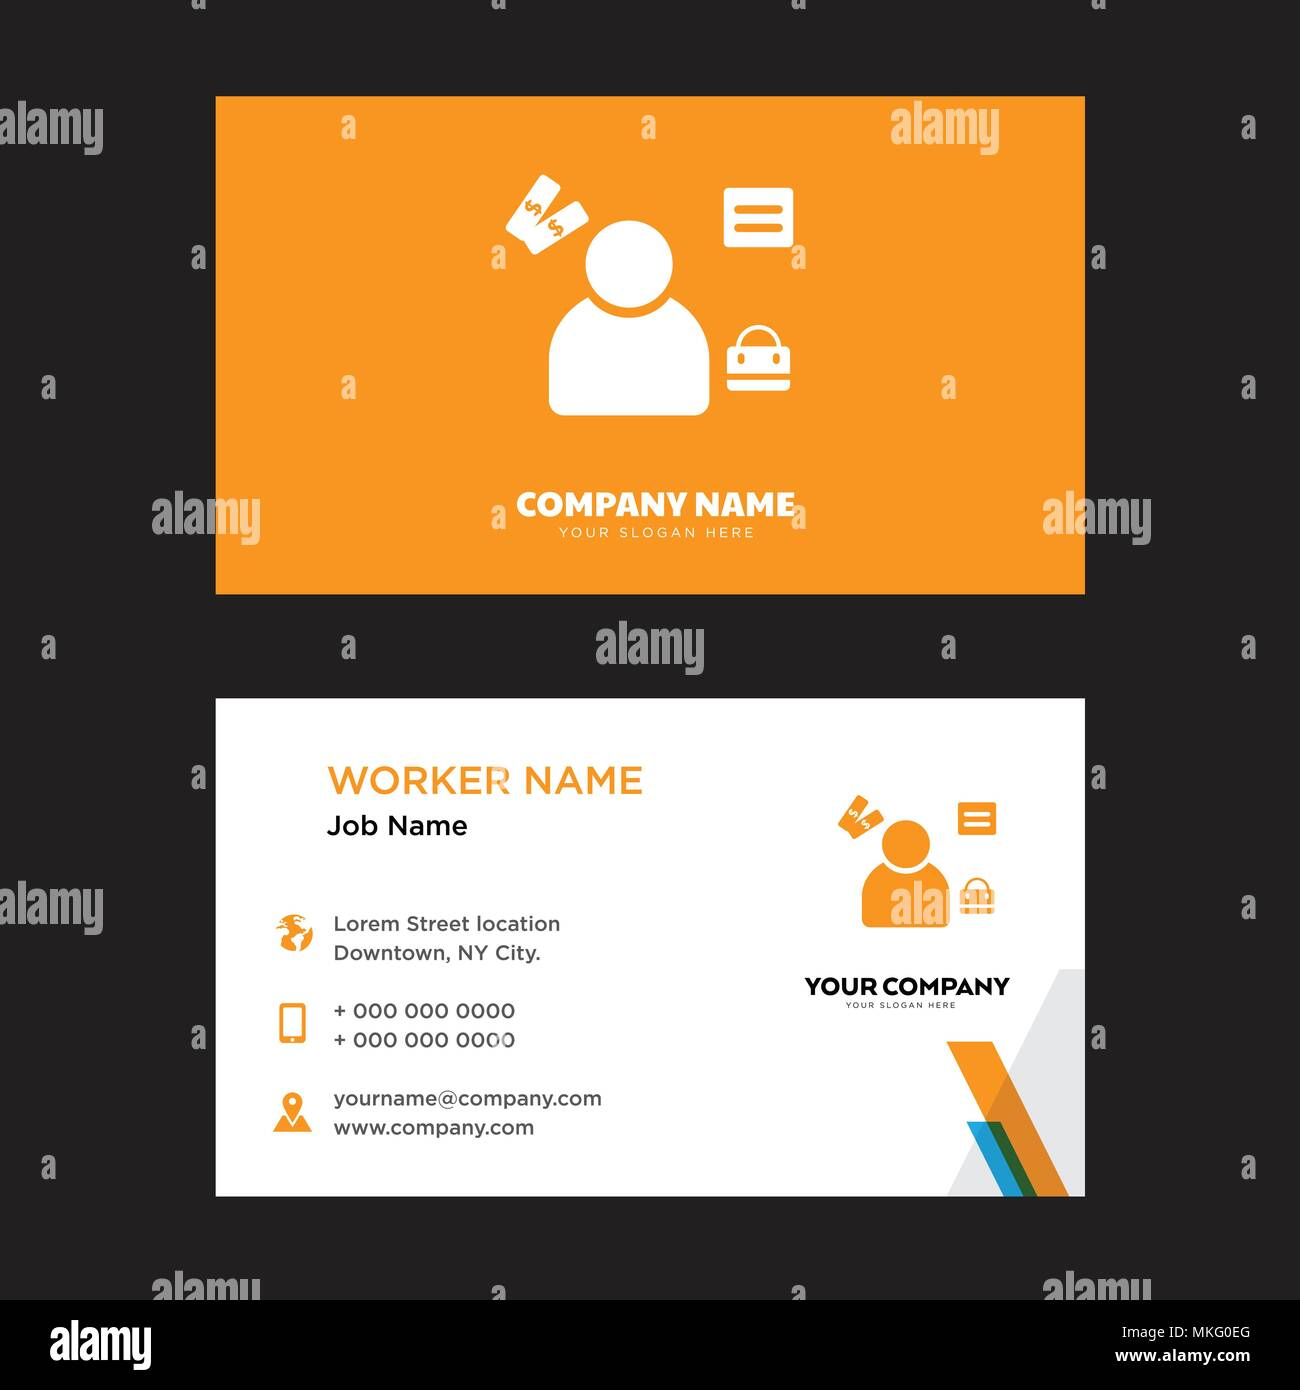 manager business card design template visiting for your company modern horizontal identity card vector - Business Card Manager